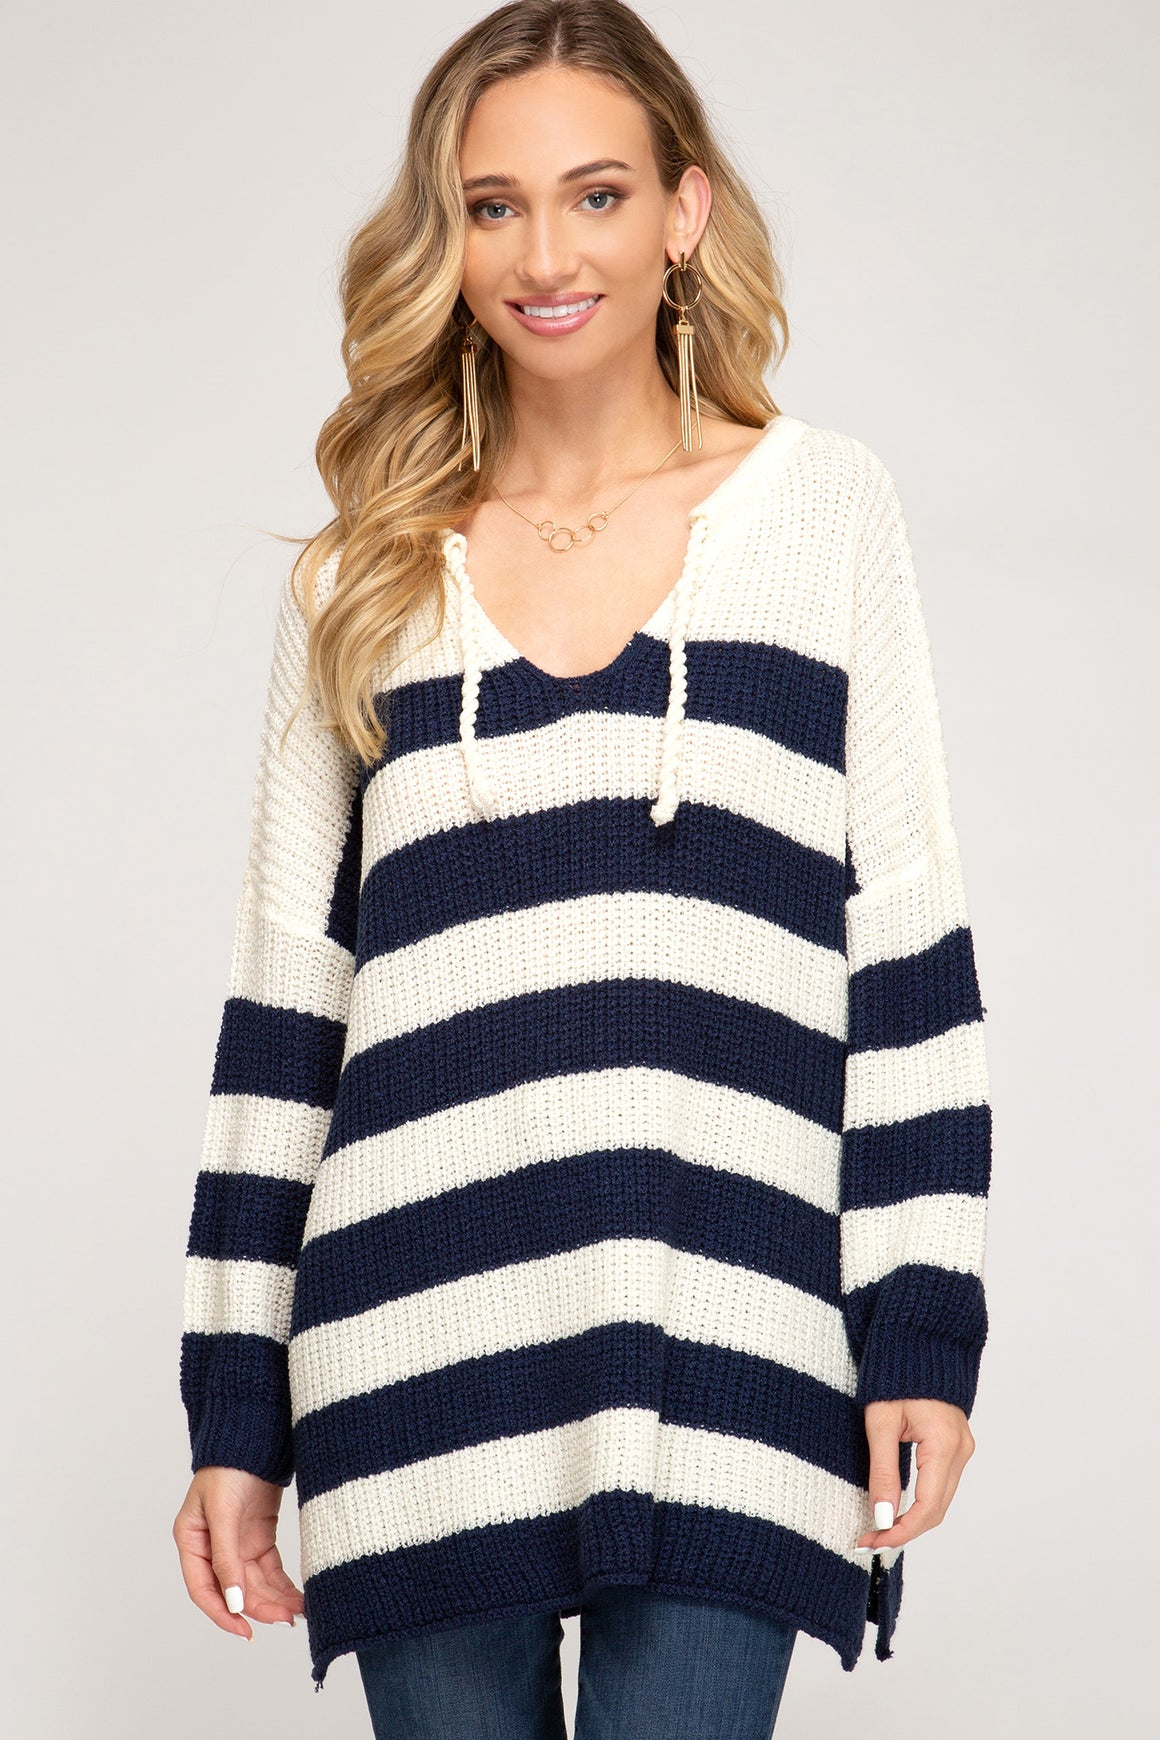 Striped Knit Pullover Sweater!